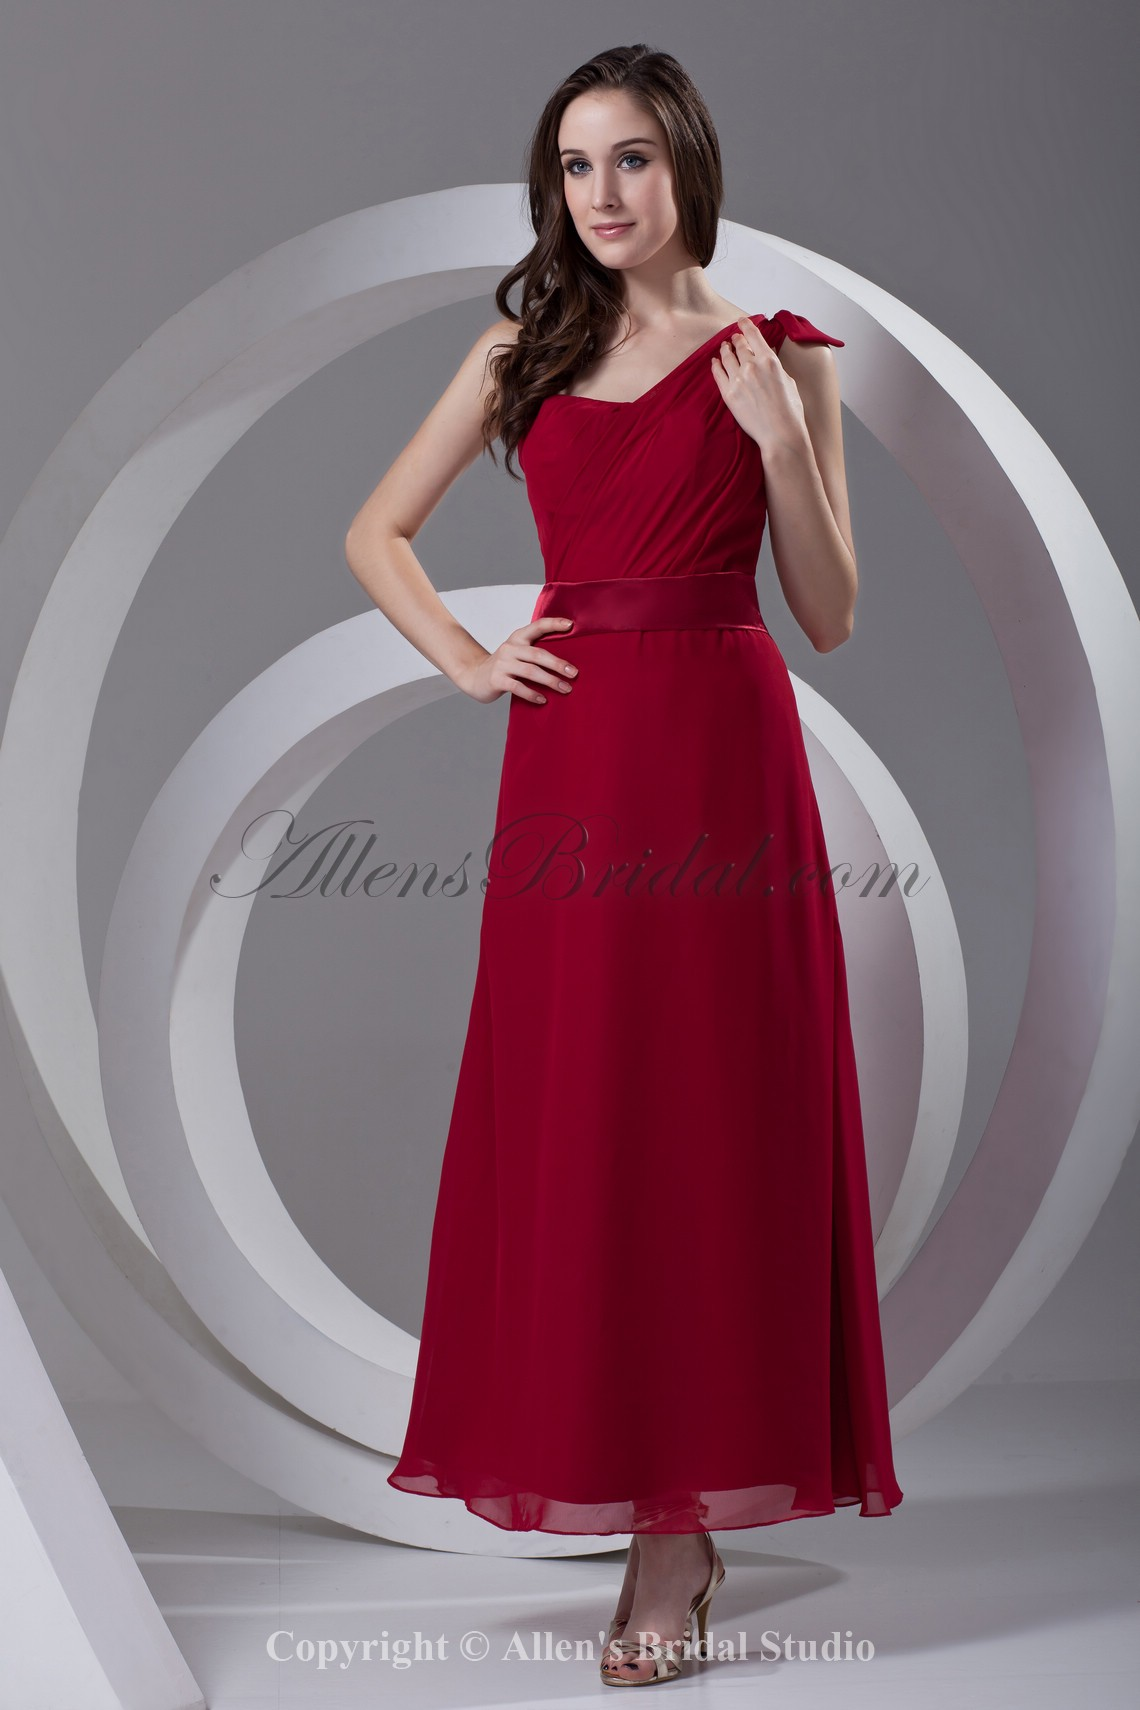 /339-2706/chiffon-asymmetrical-neckline-a-line-ankle-length-sash-prom-dress.jpg